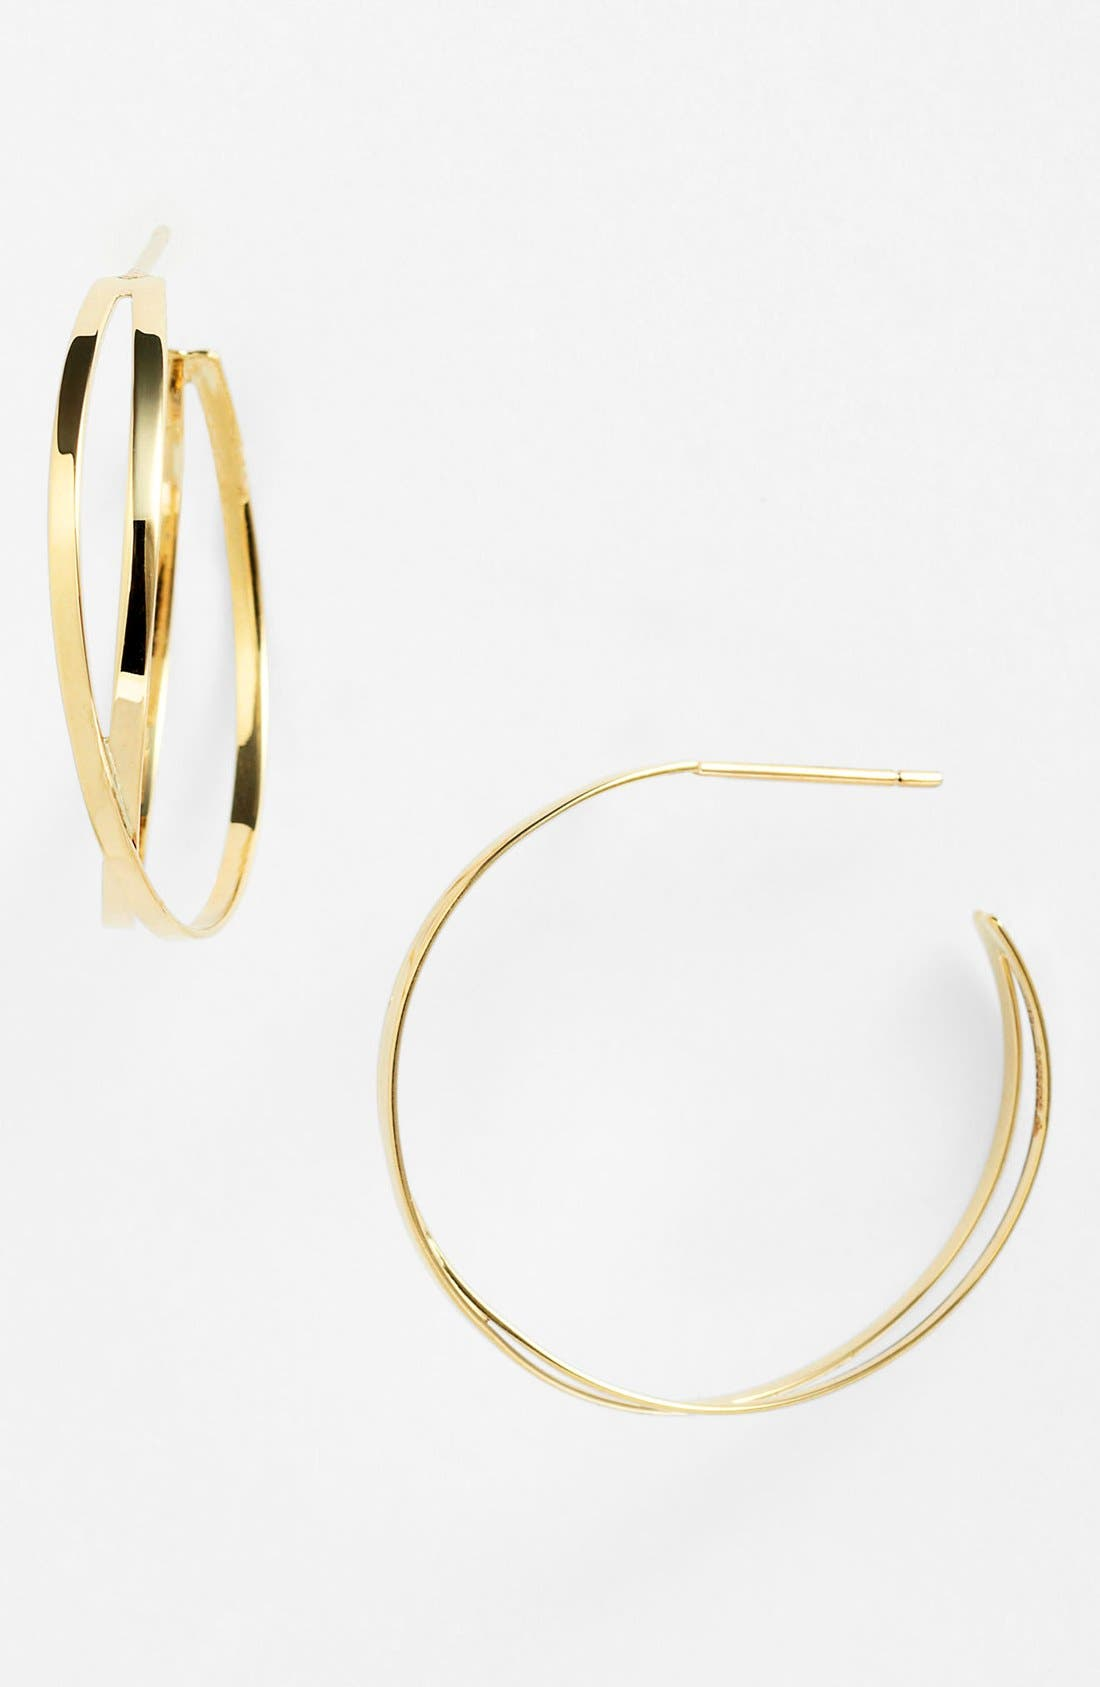 Alternate Image 1 Selected - Lana Jewelry 'White Night' Hoop Earrings